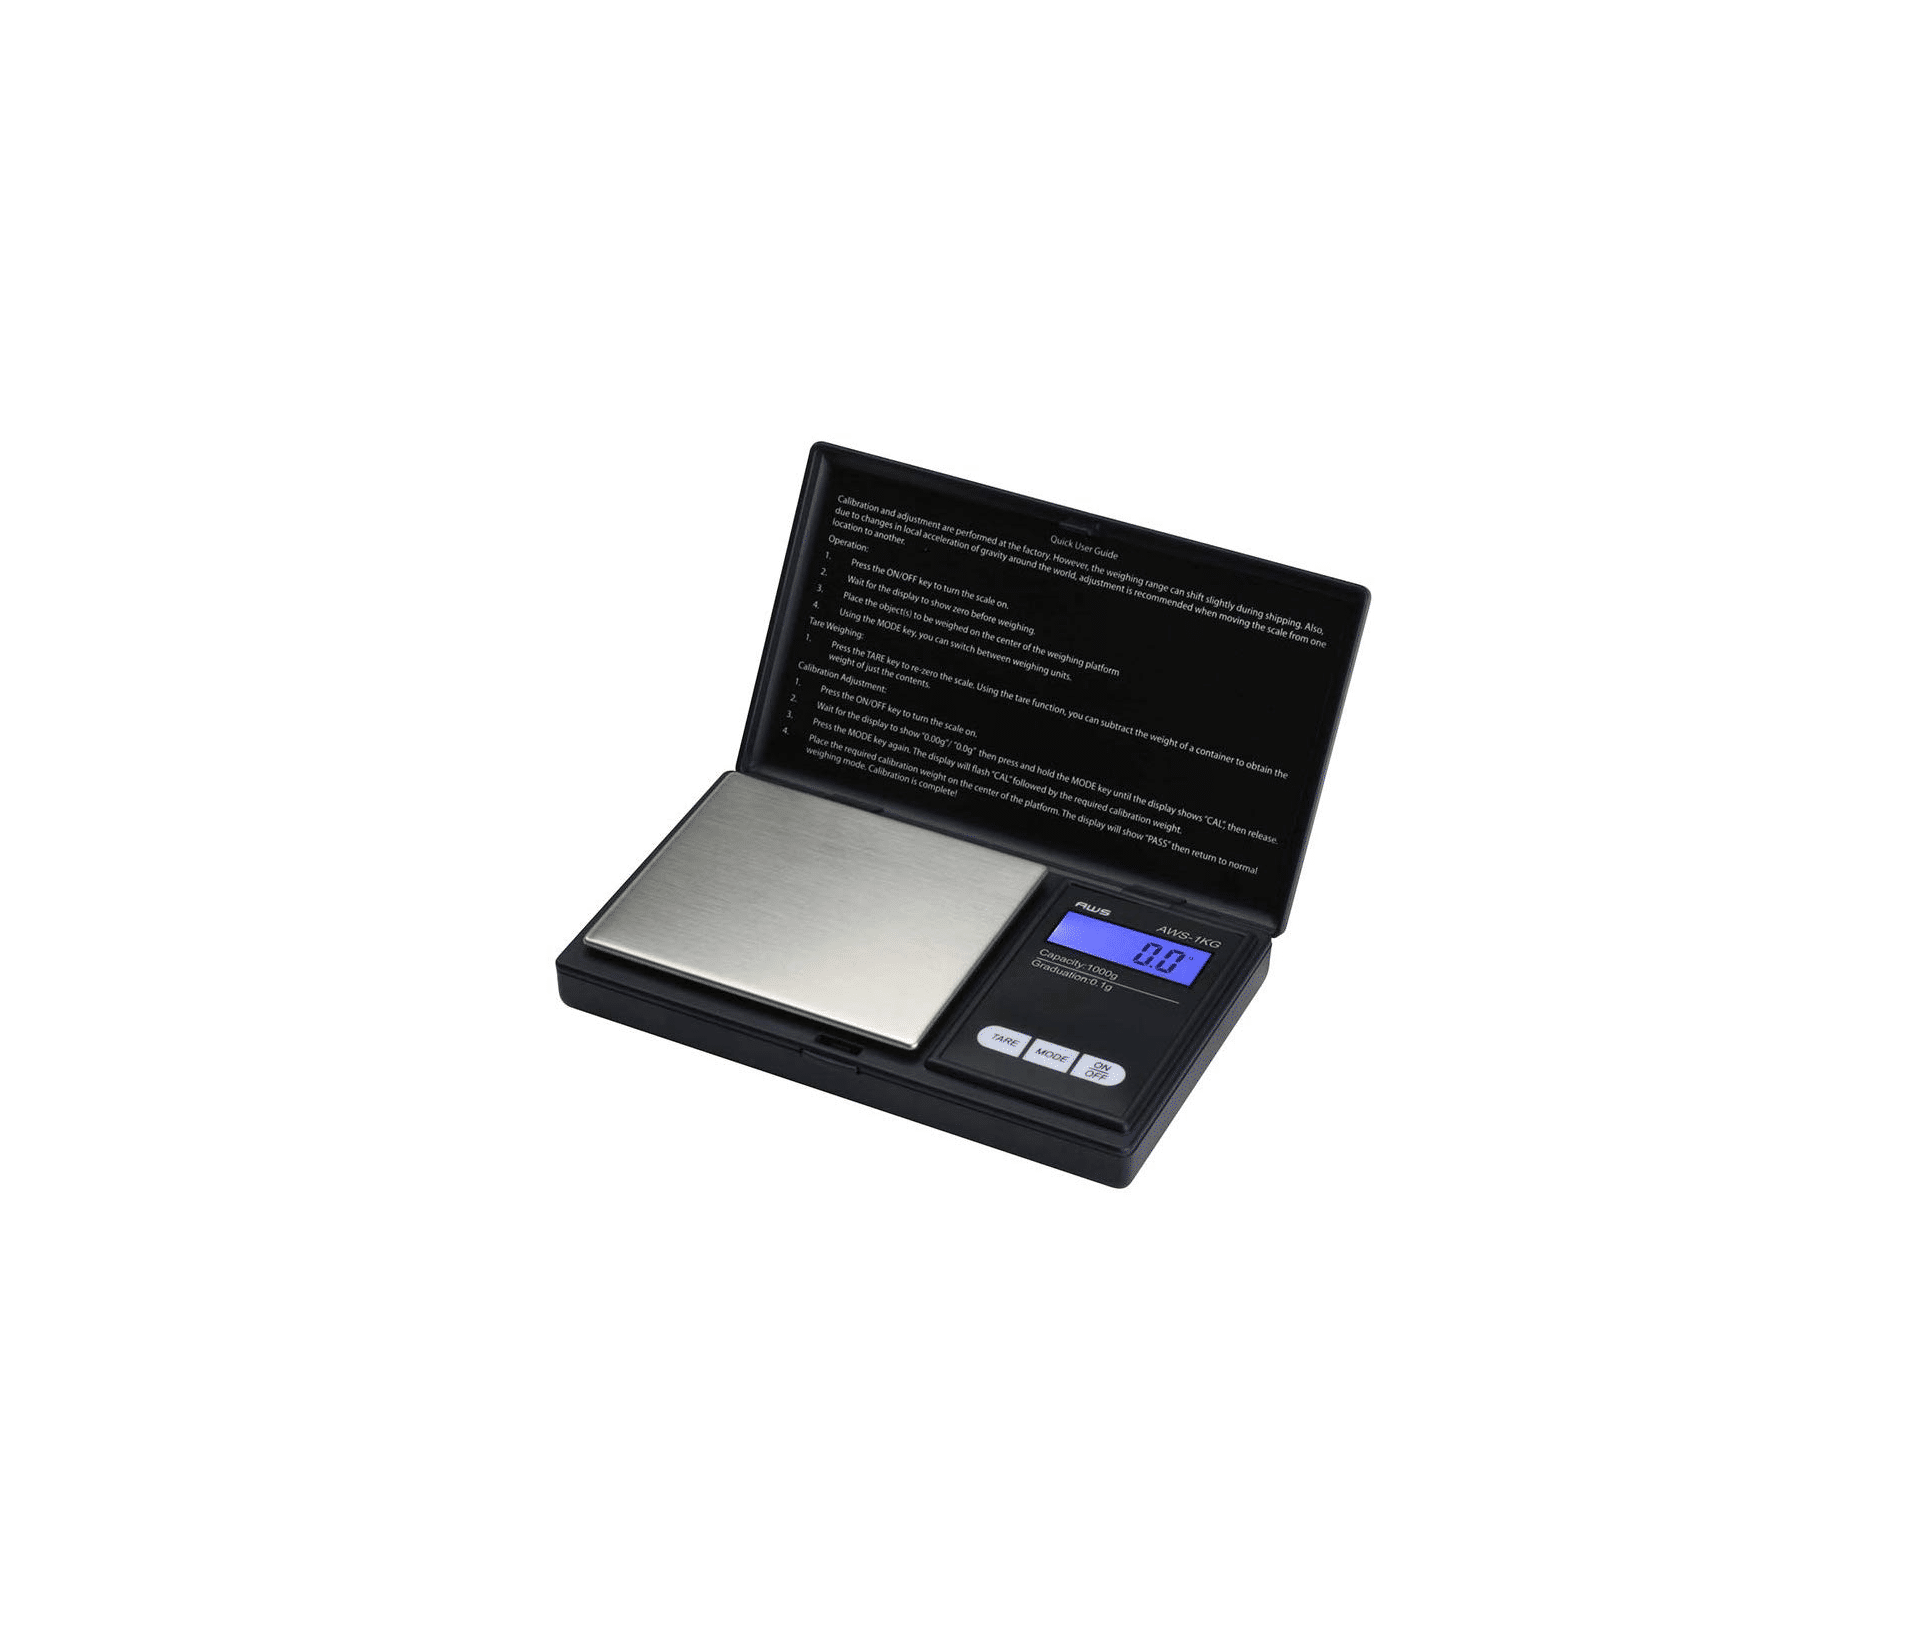 American Weigh Scale Signature Series Digital Precision Pocket Weight Scale